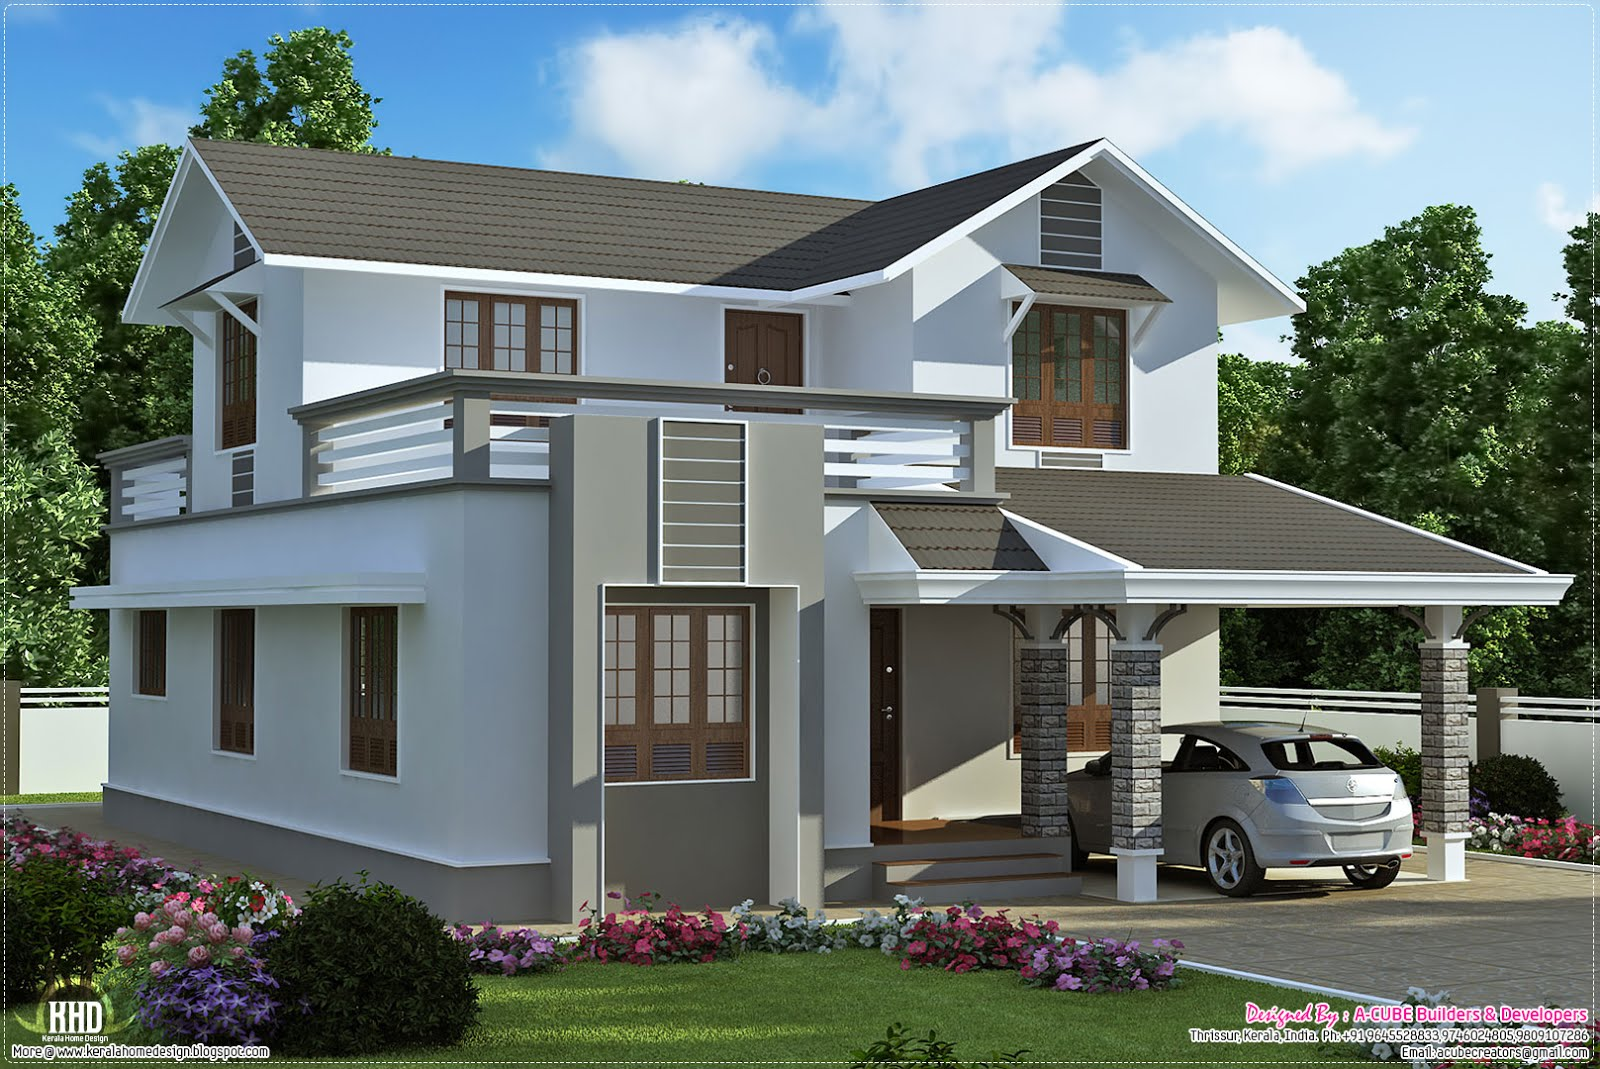 2 storey modern house designs and floor plans philippines images Dezine house